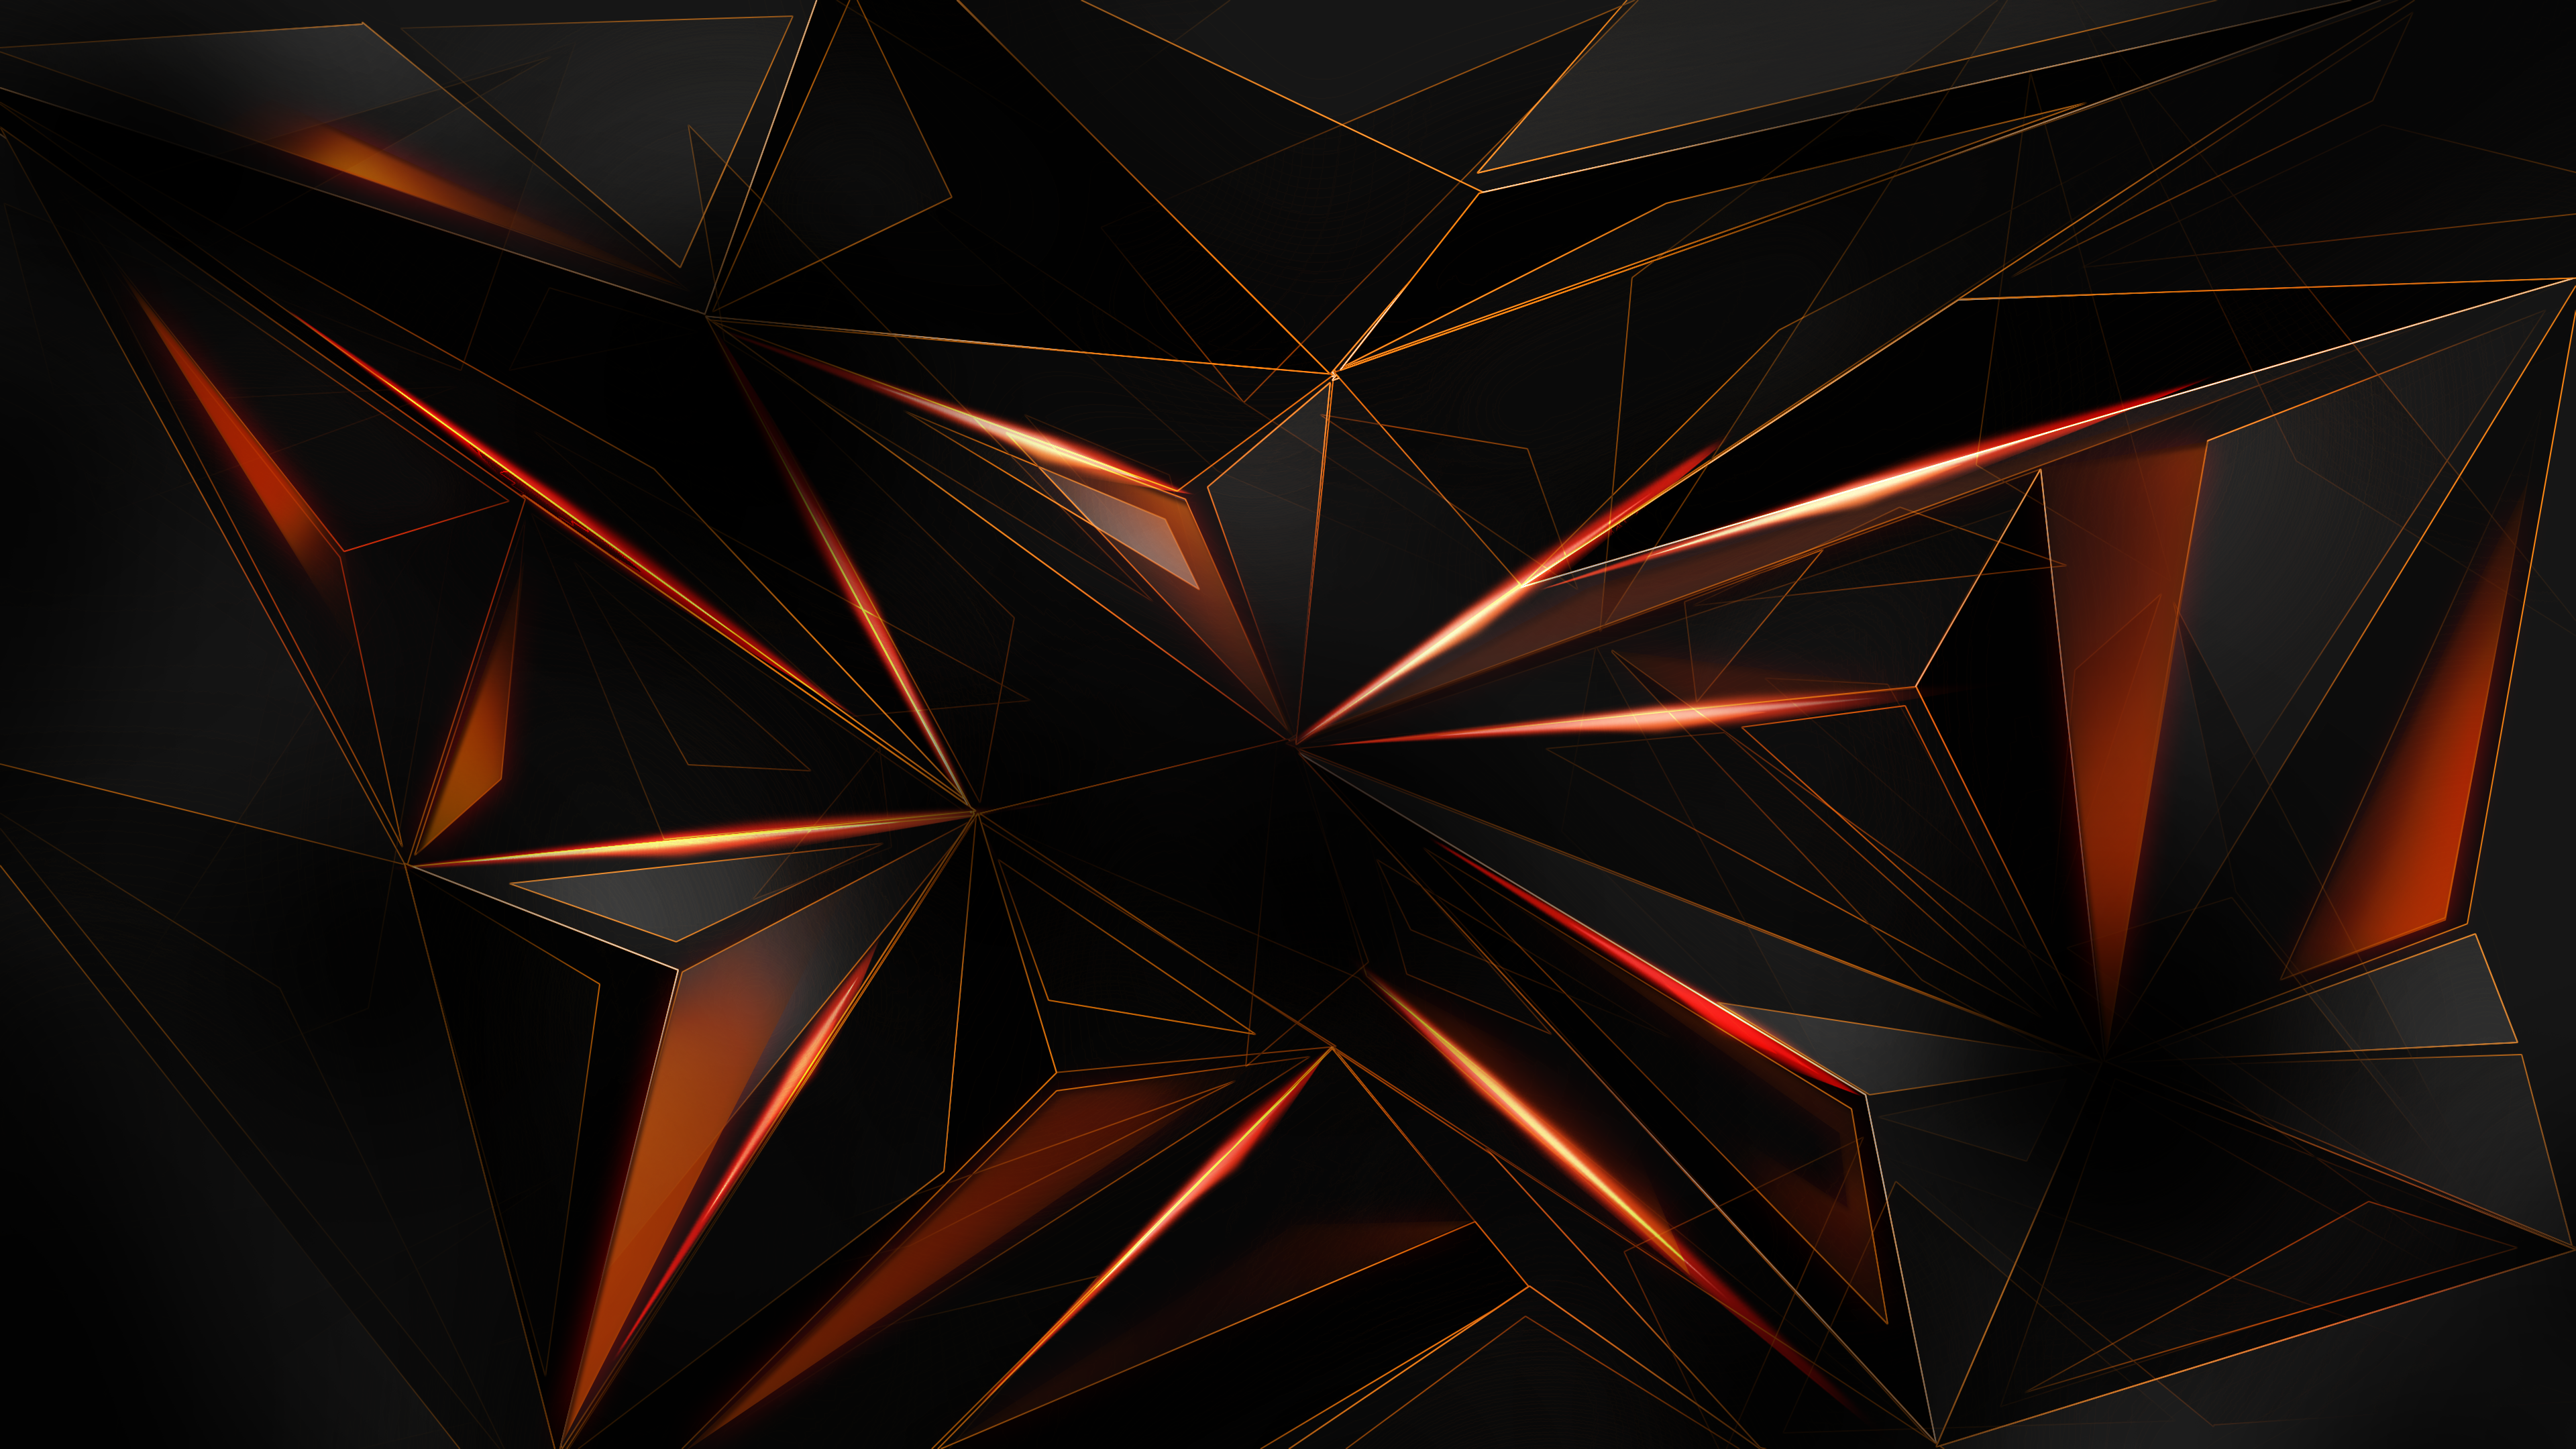 Black abstract wallpapers for desktop